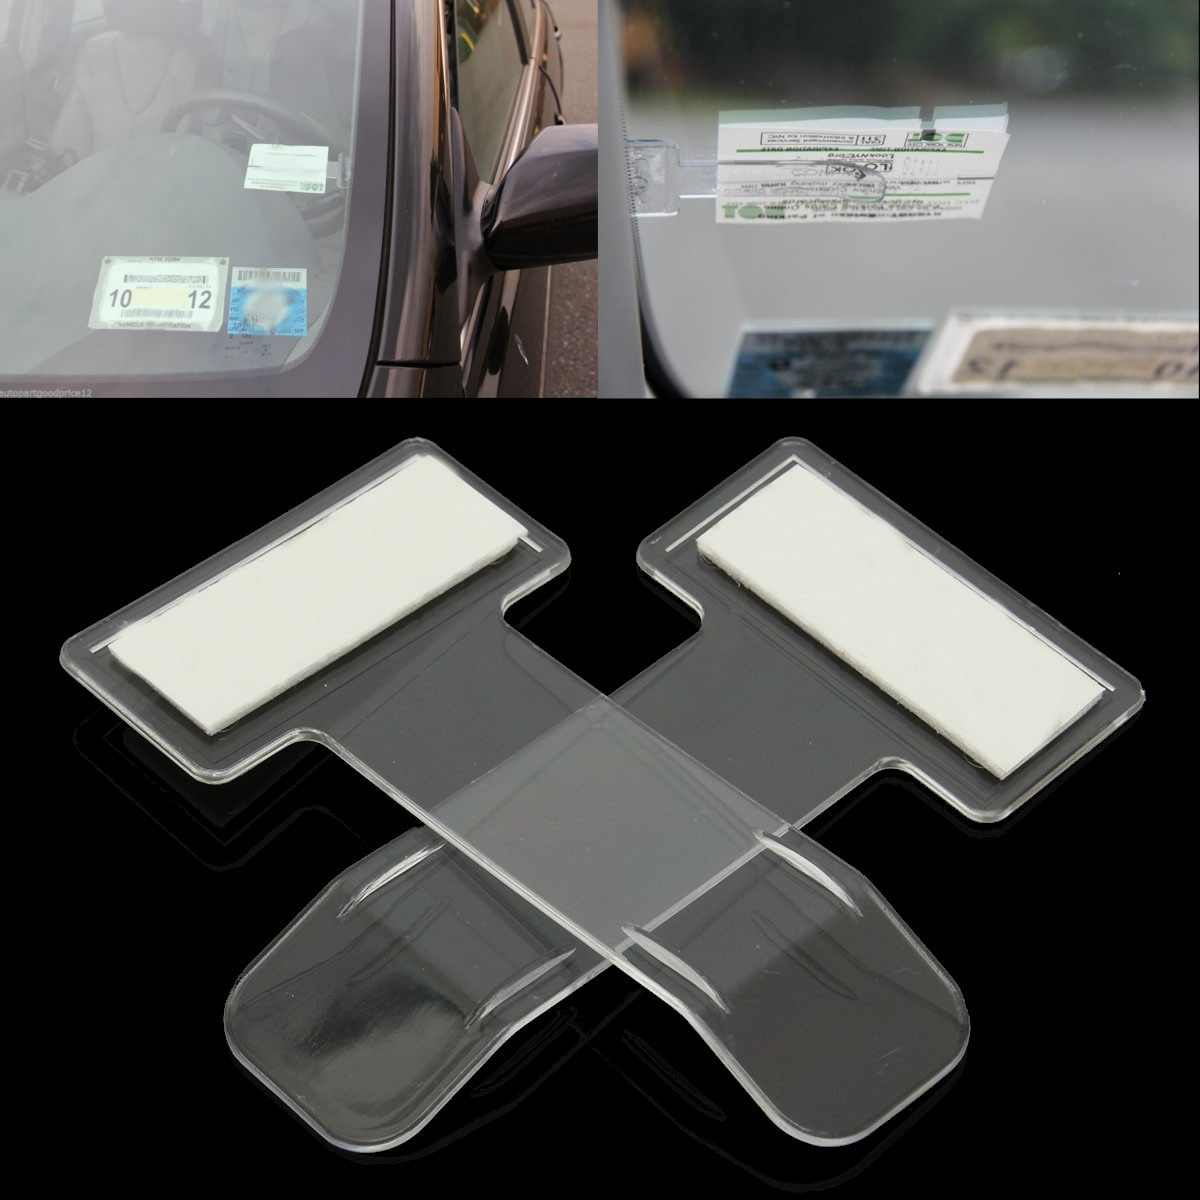 2 stks/set Auto Voertuig Parking Ticket Vergunning Houder Clip Sticker Voorruit Venster Fastener Stickers Kit Auto Styling Accessoires